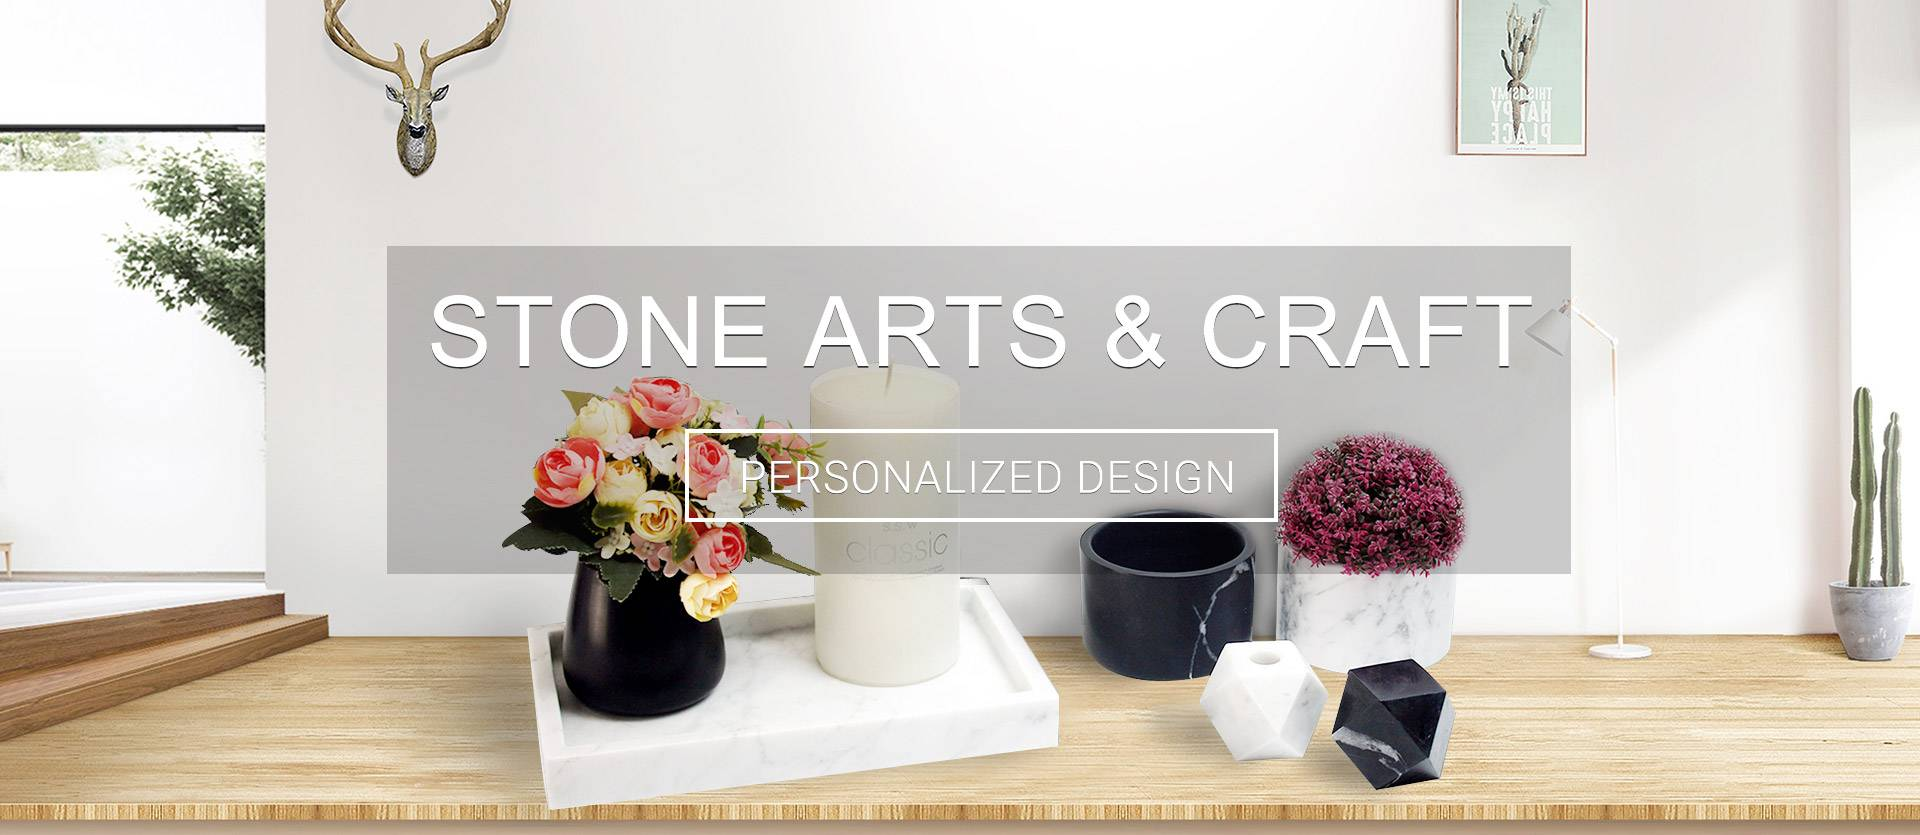 Stone Arts & Craft